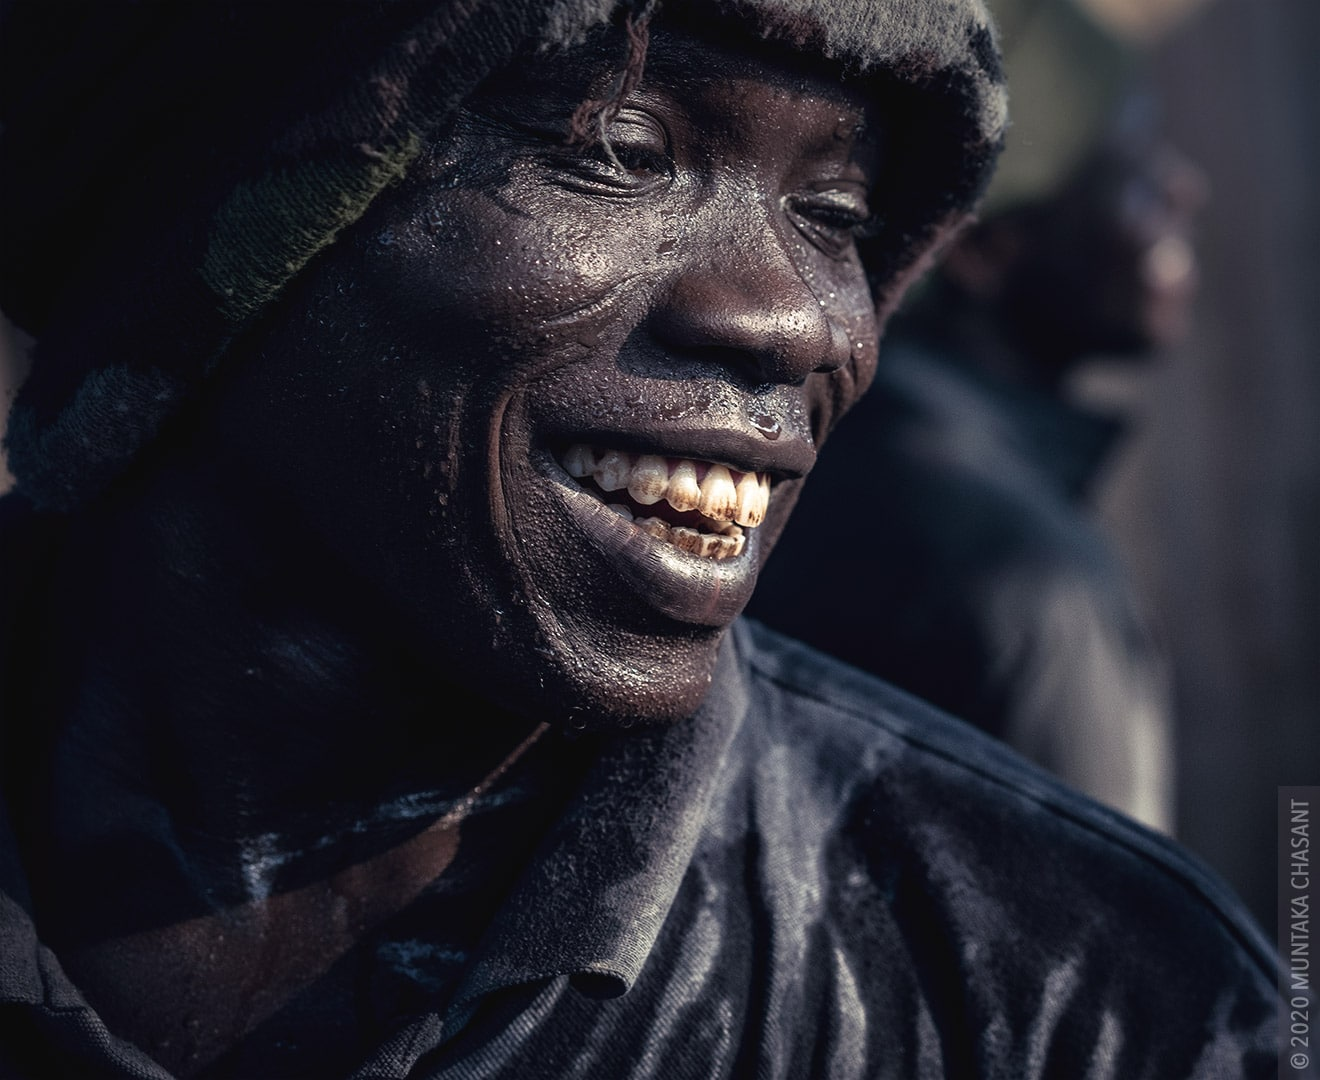 Man Smiling Photo: Smiling urban man portrait. Millions of young people in Africa with no education are forced to urban areas in search of greener pastures due to rural poverty. A lot of them end up in the informal sector, where they engage in all sorts of works. © 2020 Muntaka Chasant